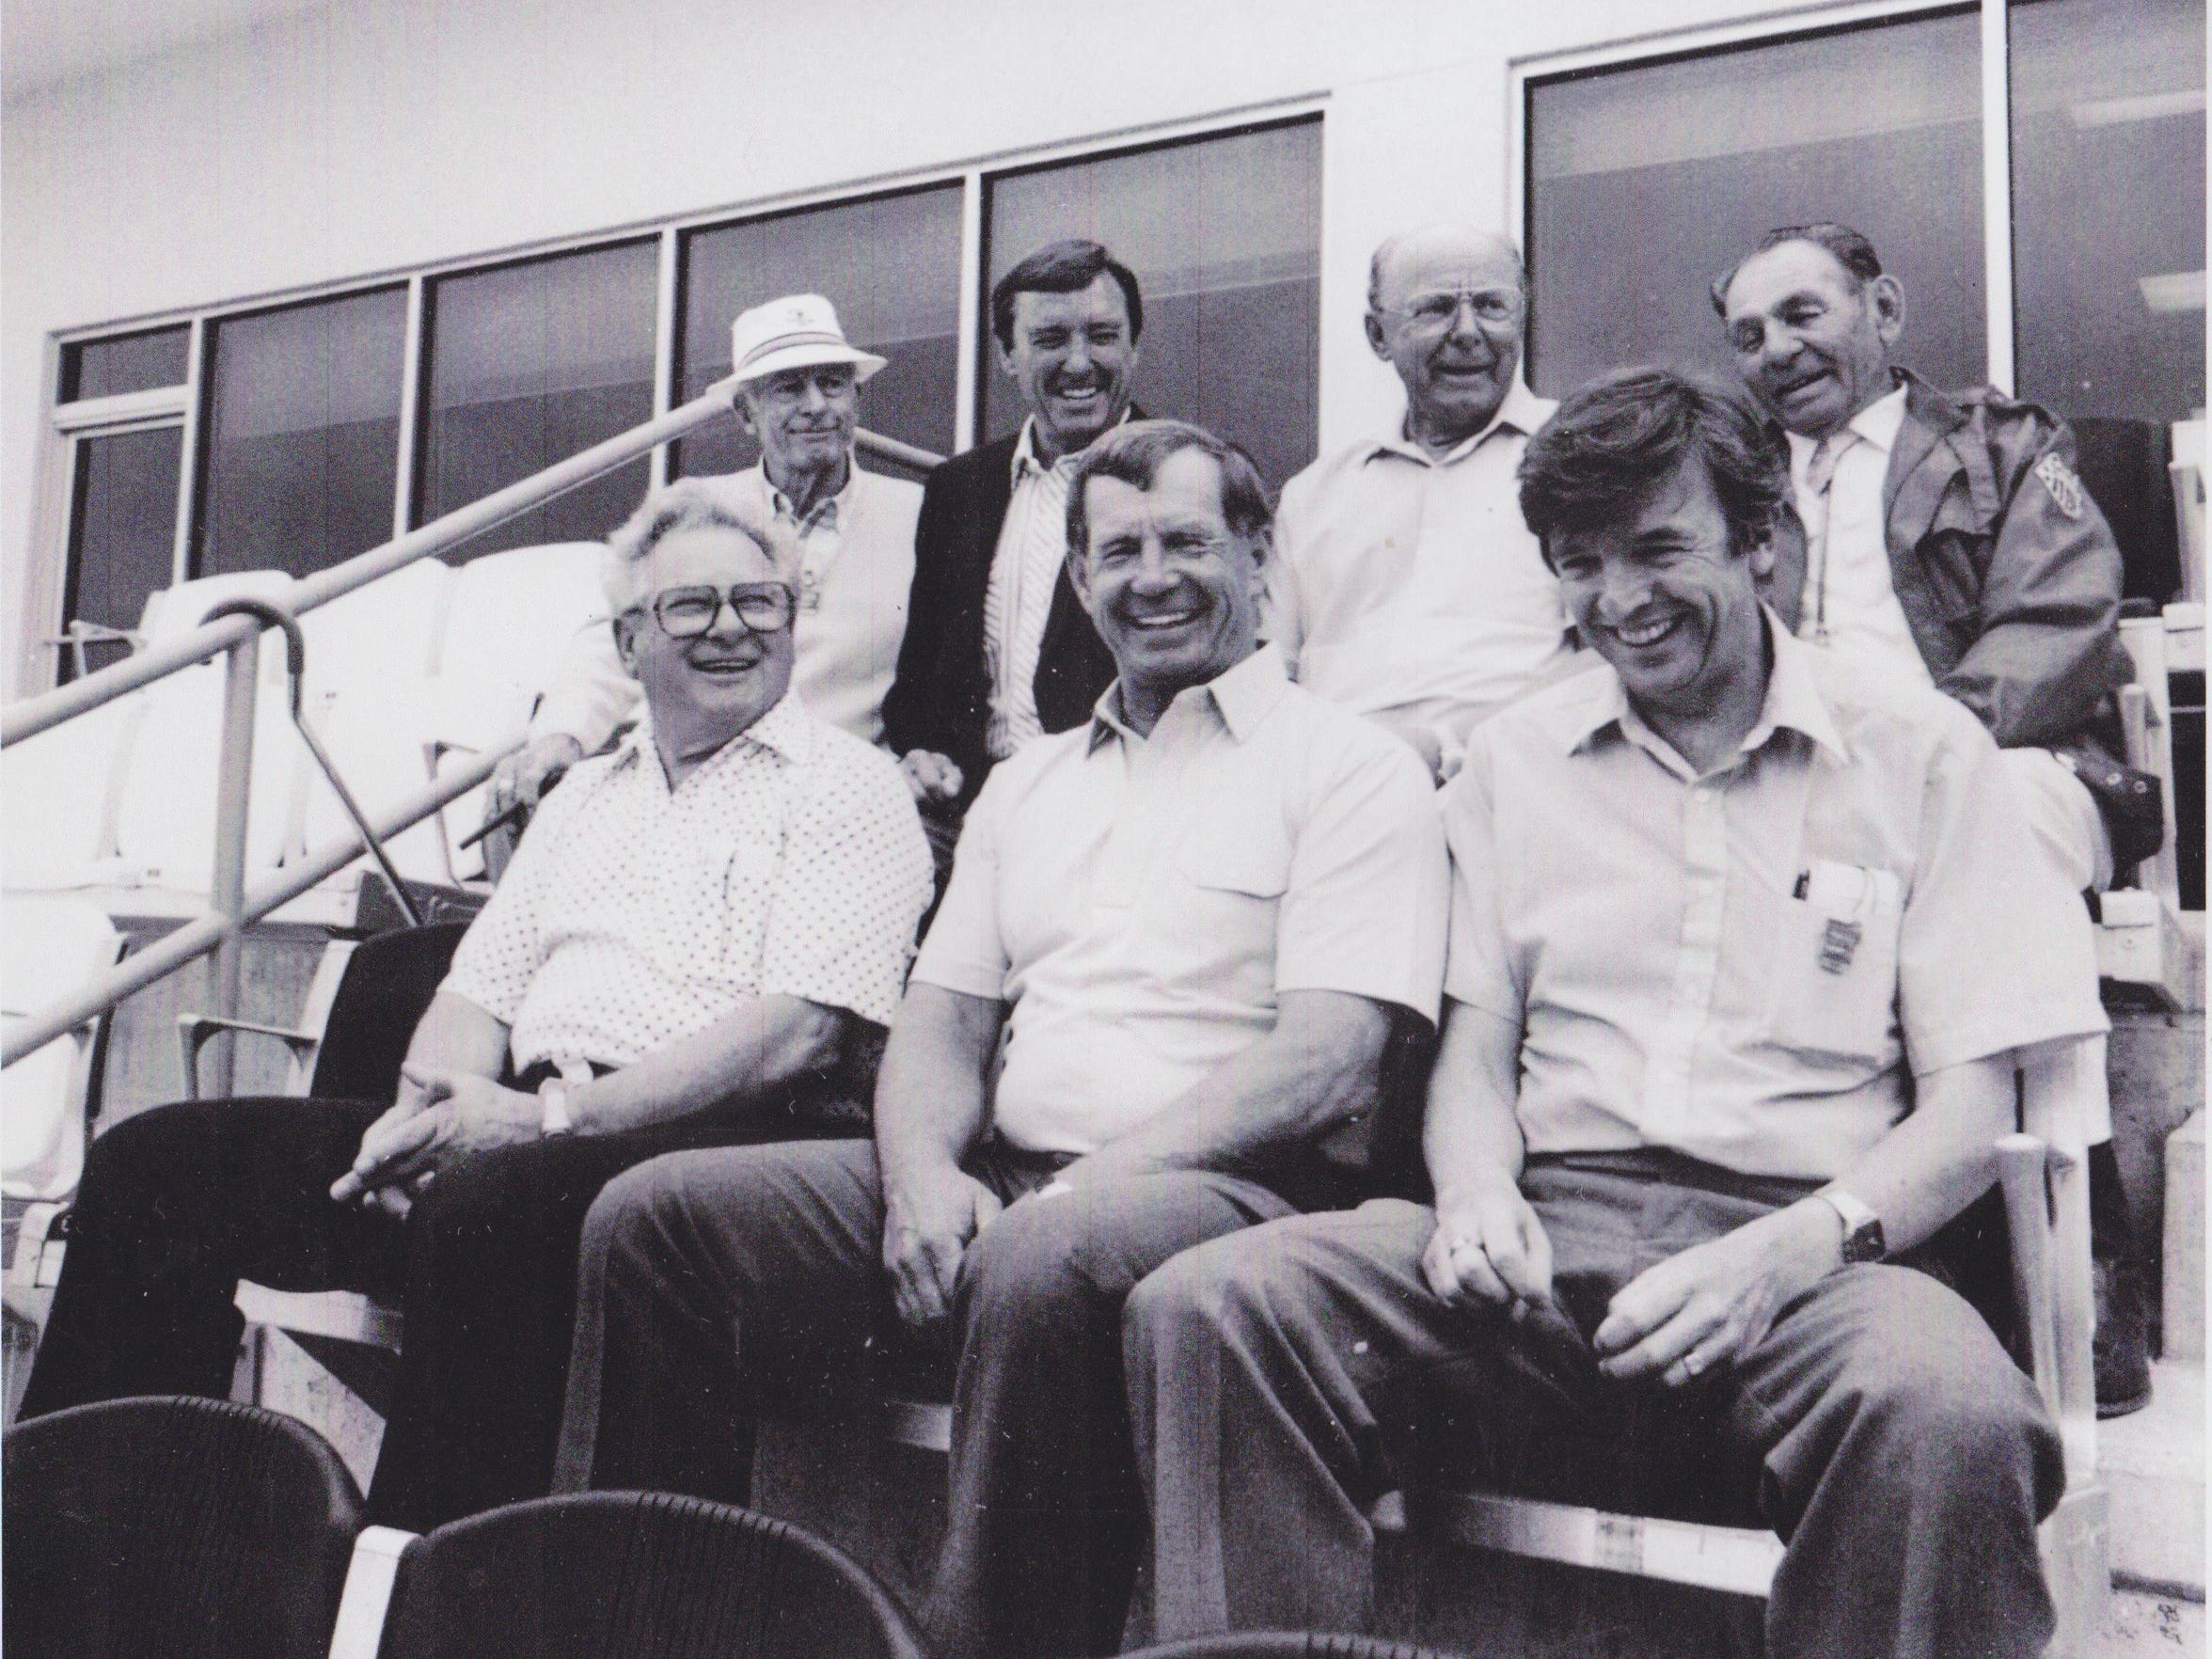 Donald Davidson is joined by racing royalty: (Top row, left to right) Sam Hanks, Johnny Rutherford, Jim Rathmann and  Louis Meyer; (bottom row, left to right)  Rodger Ward, Parnelli Jones and Davidson.